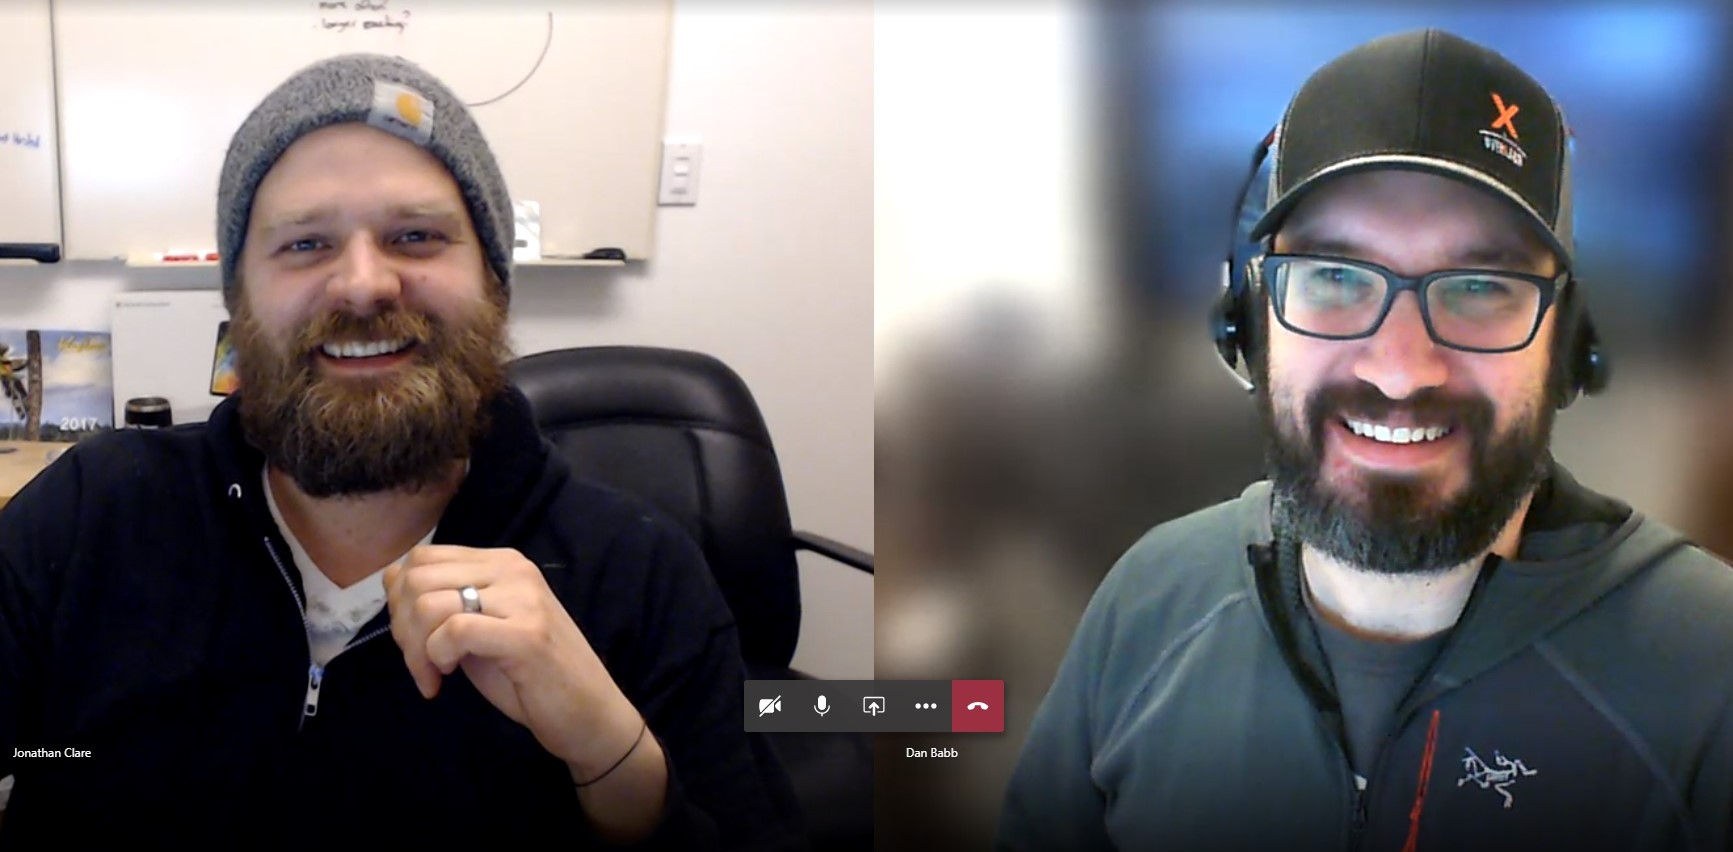 A screenshot shows Clare on the left and Babb on the right. Both are wearing headphones and appear next to each in a two photo-phot format spliced together in one shot by Microsoft Teams.